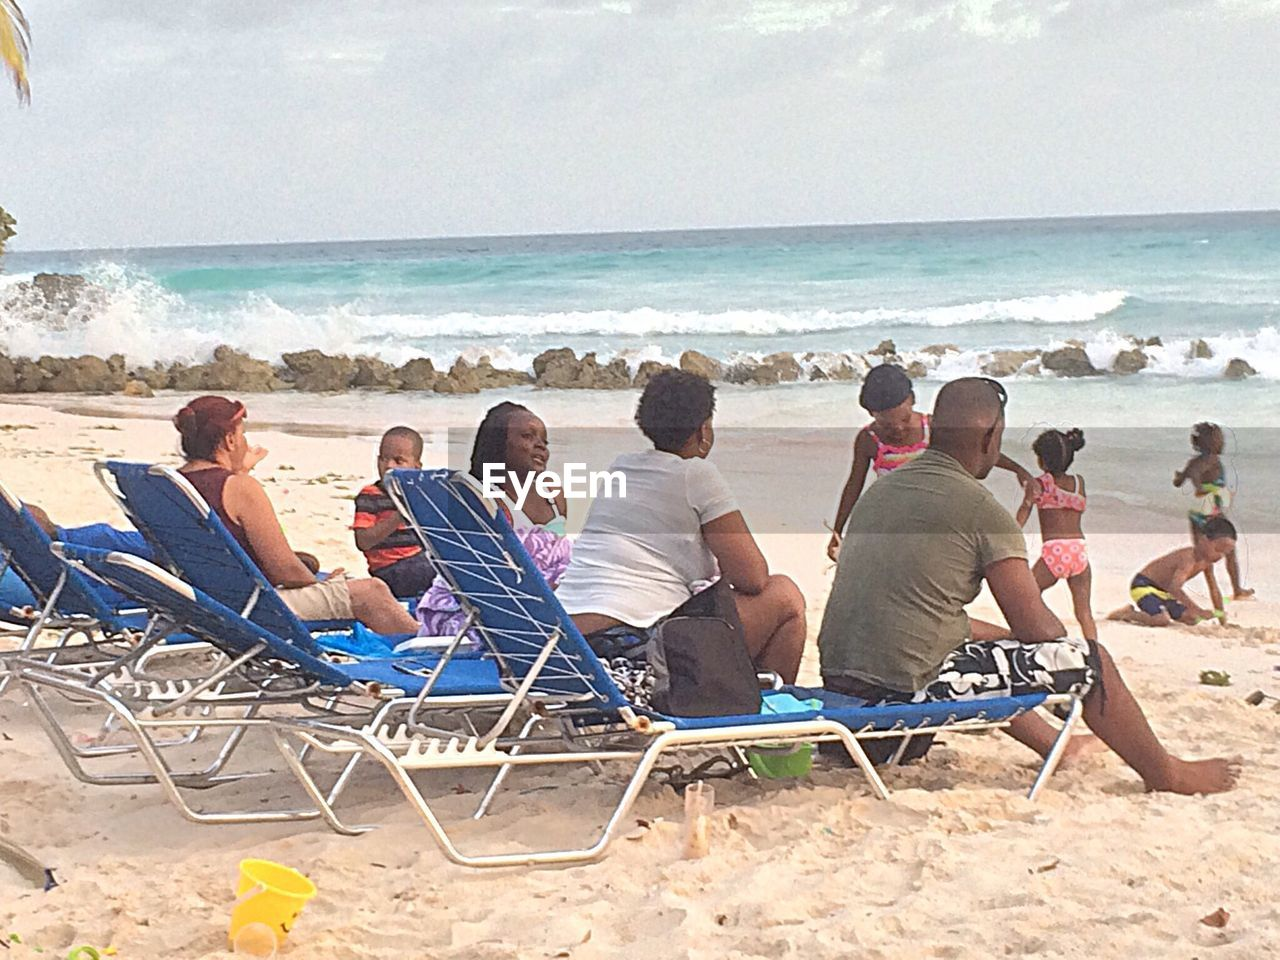 beach, sea, sand, horizon over water, vacations, sitting, enjoyment, water, weekend activities, relaxation, beauty in nature, men, outdoors, leisure activity, day, lifestyles, summer, large group of people, togetherness, nature, women, adult, sky, friendship, scenics, wave, people, adults only